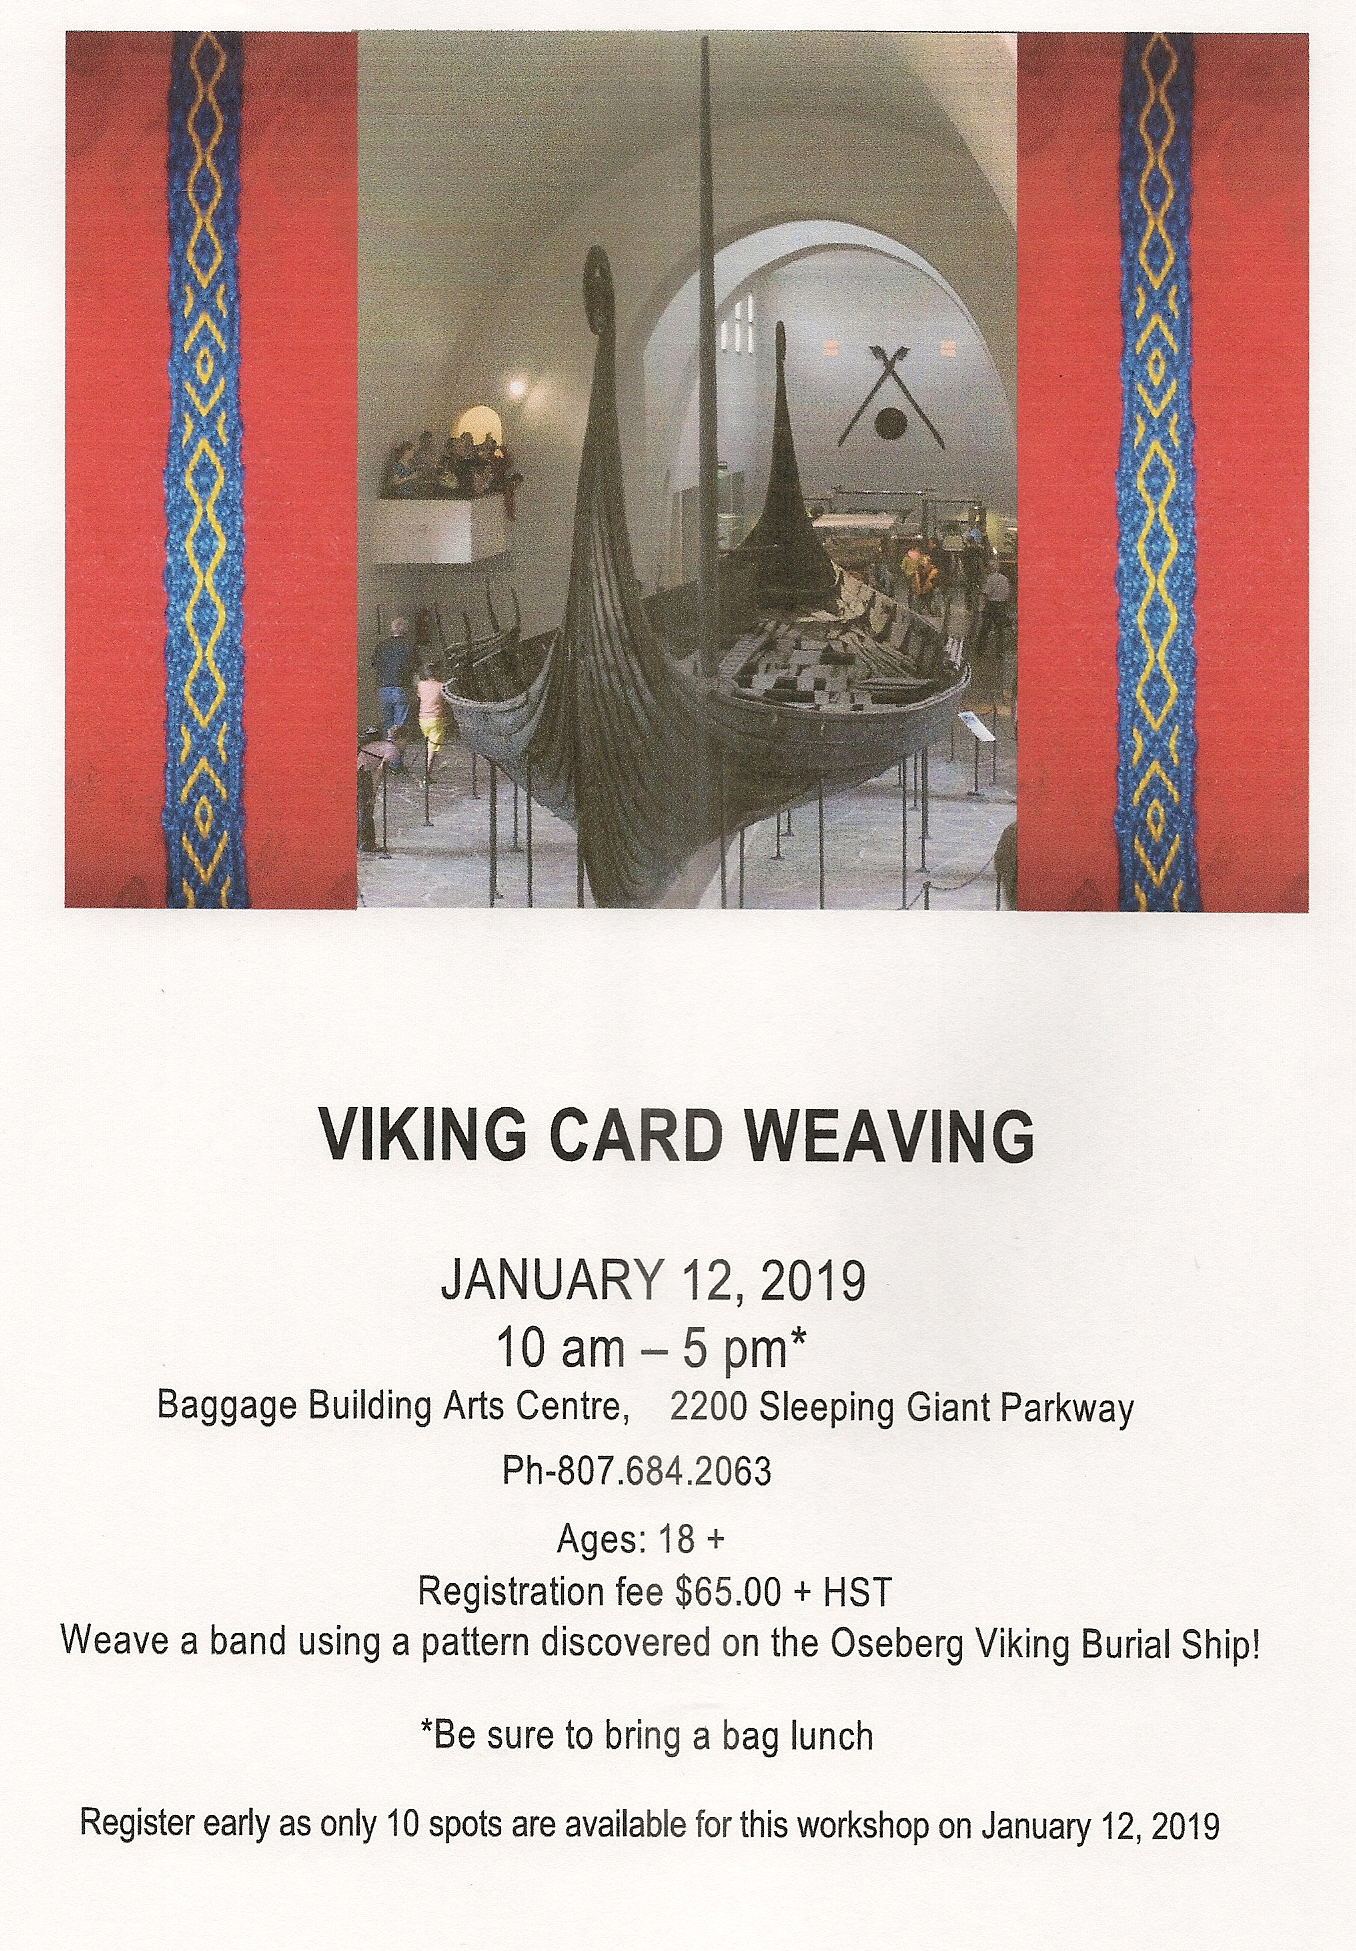 Poster with image at the top and text describing the Viking Card Weaving Workshop at the bottom